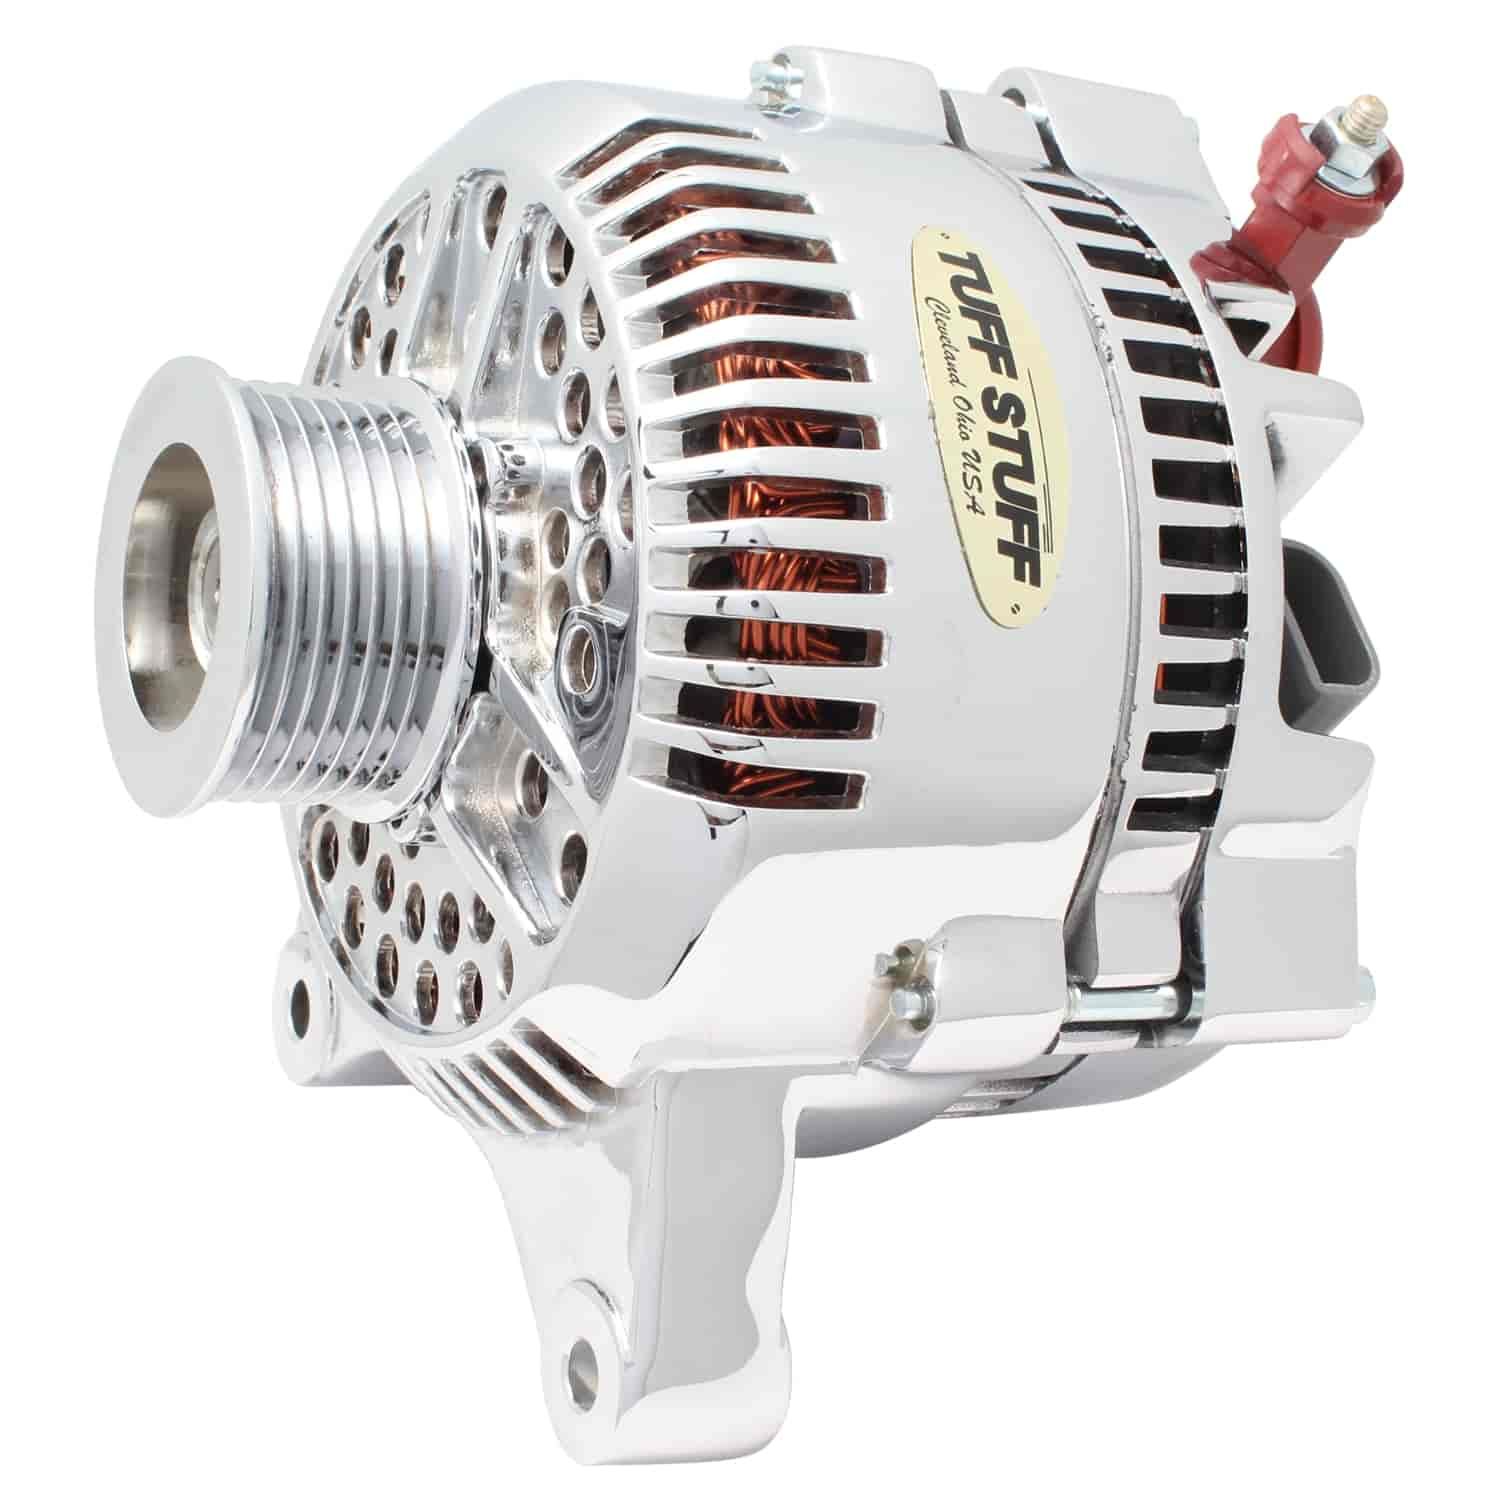 Tuff Stuff 7764A - Tuff Stuff Chrome Alternators